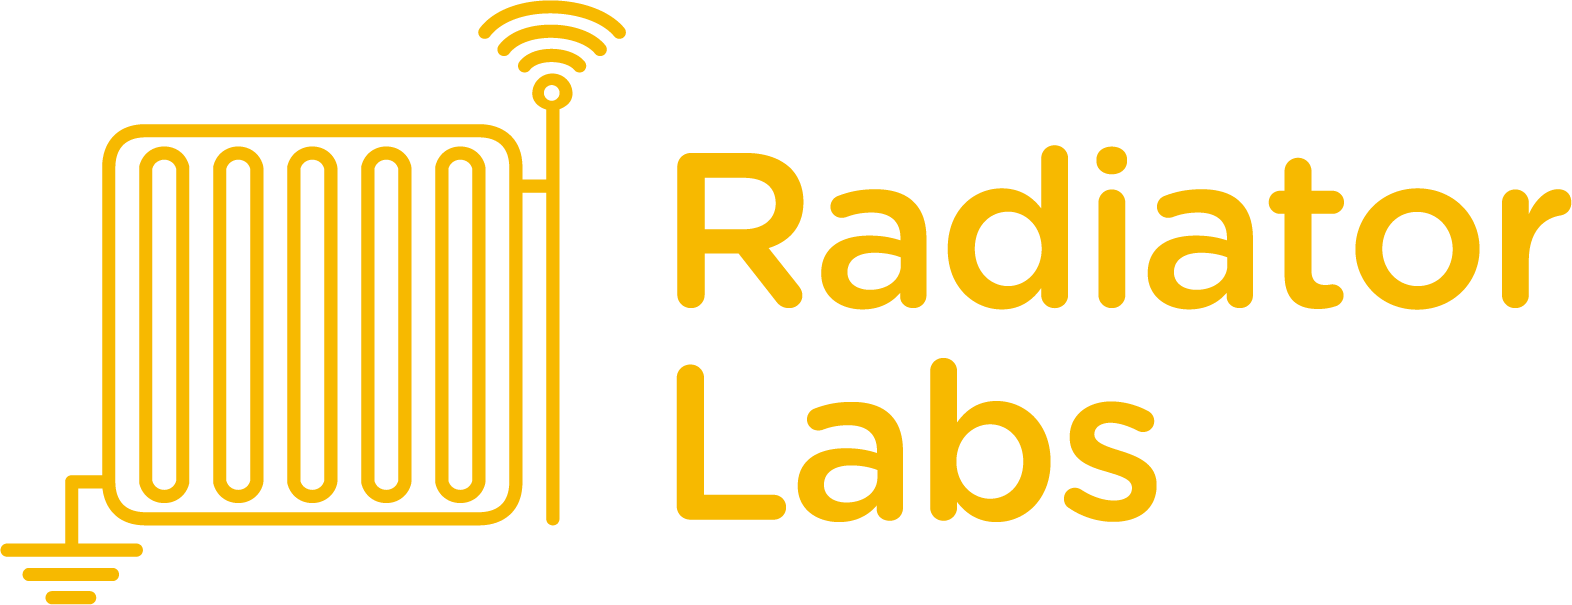 Radiator Labs Help Center home page